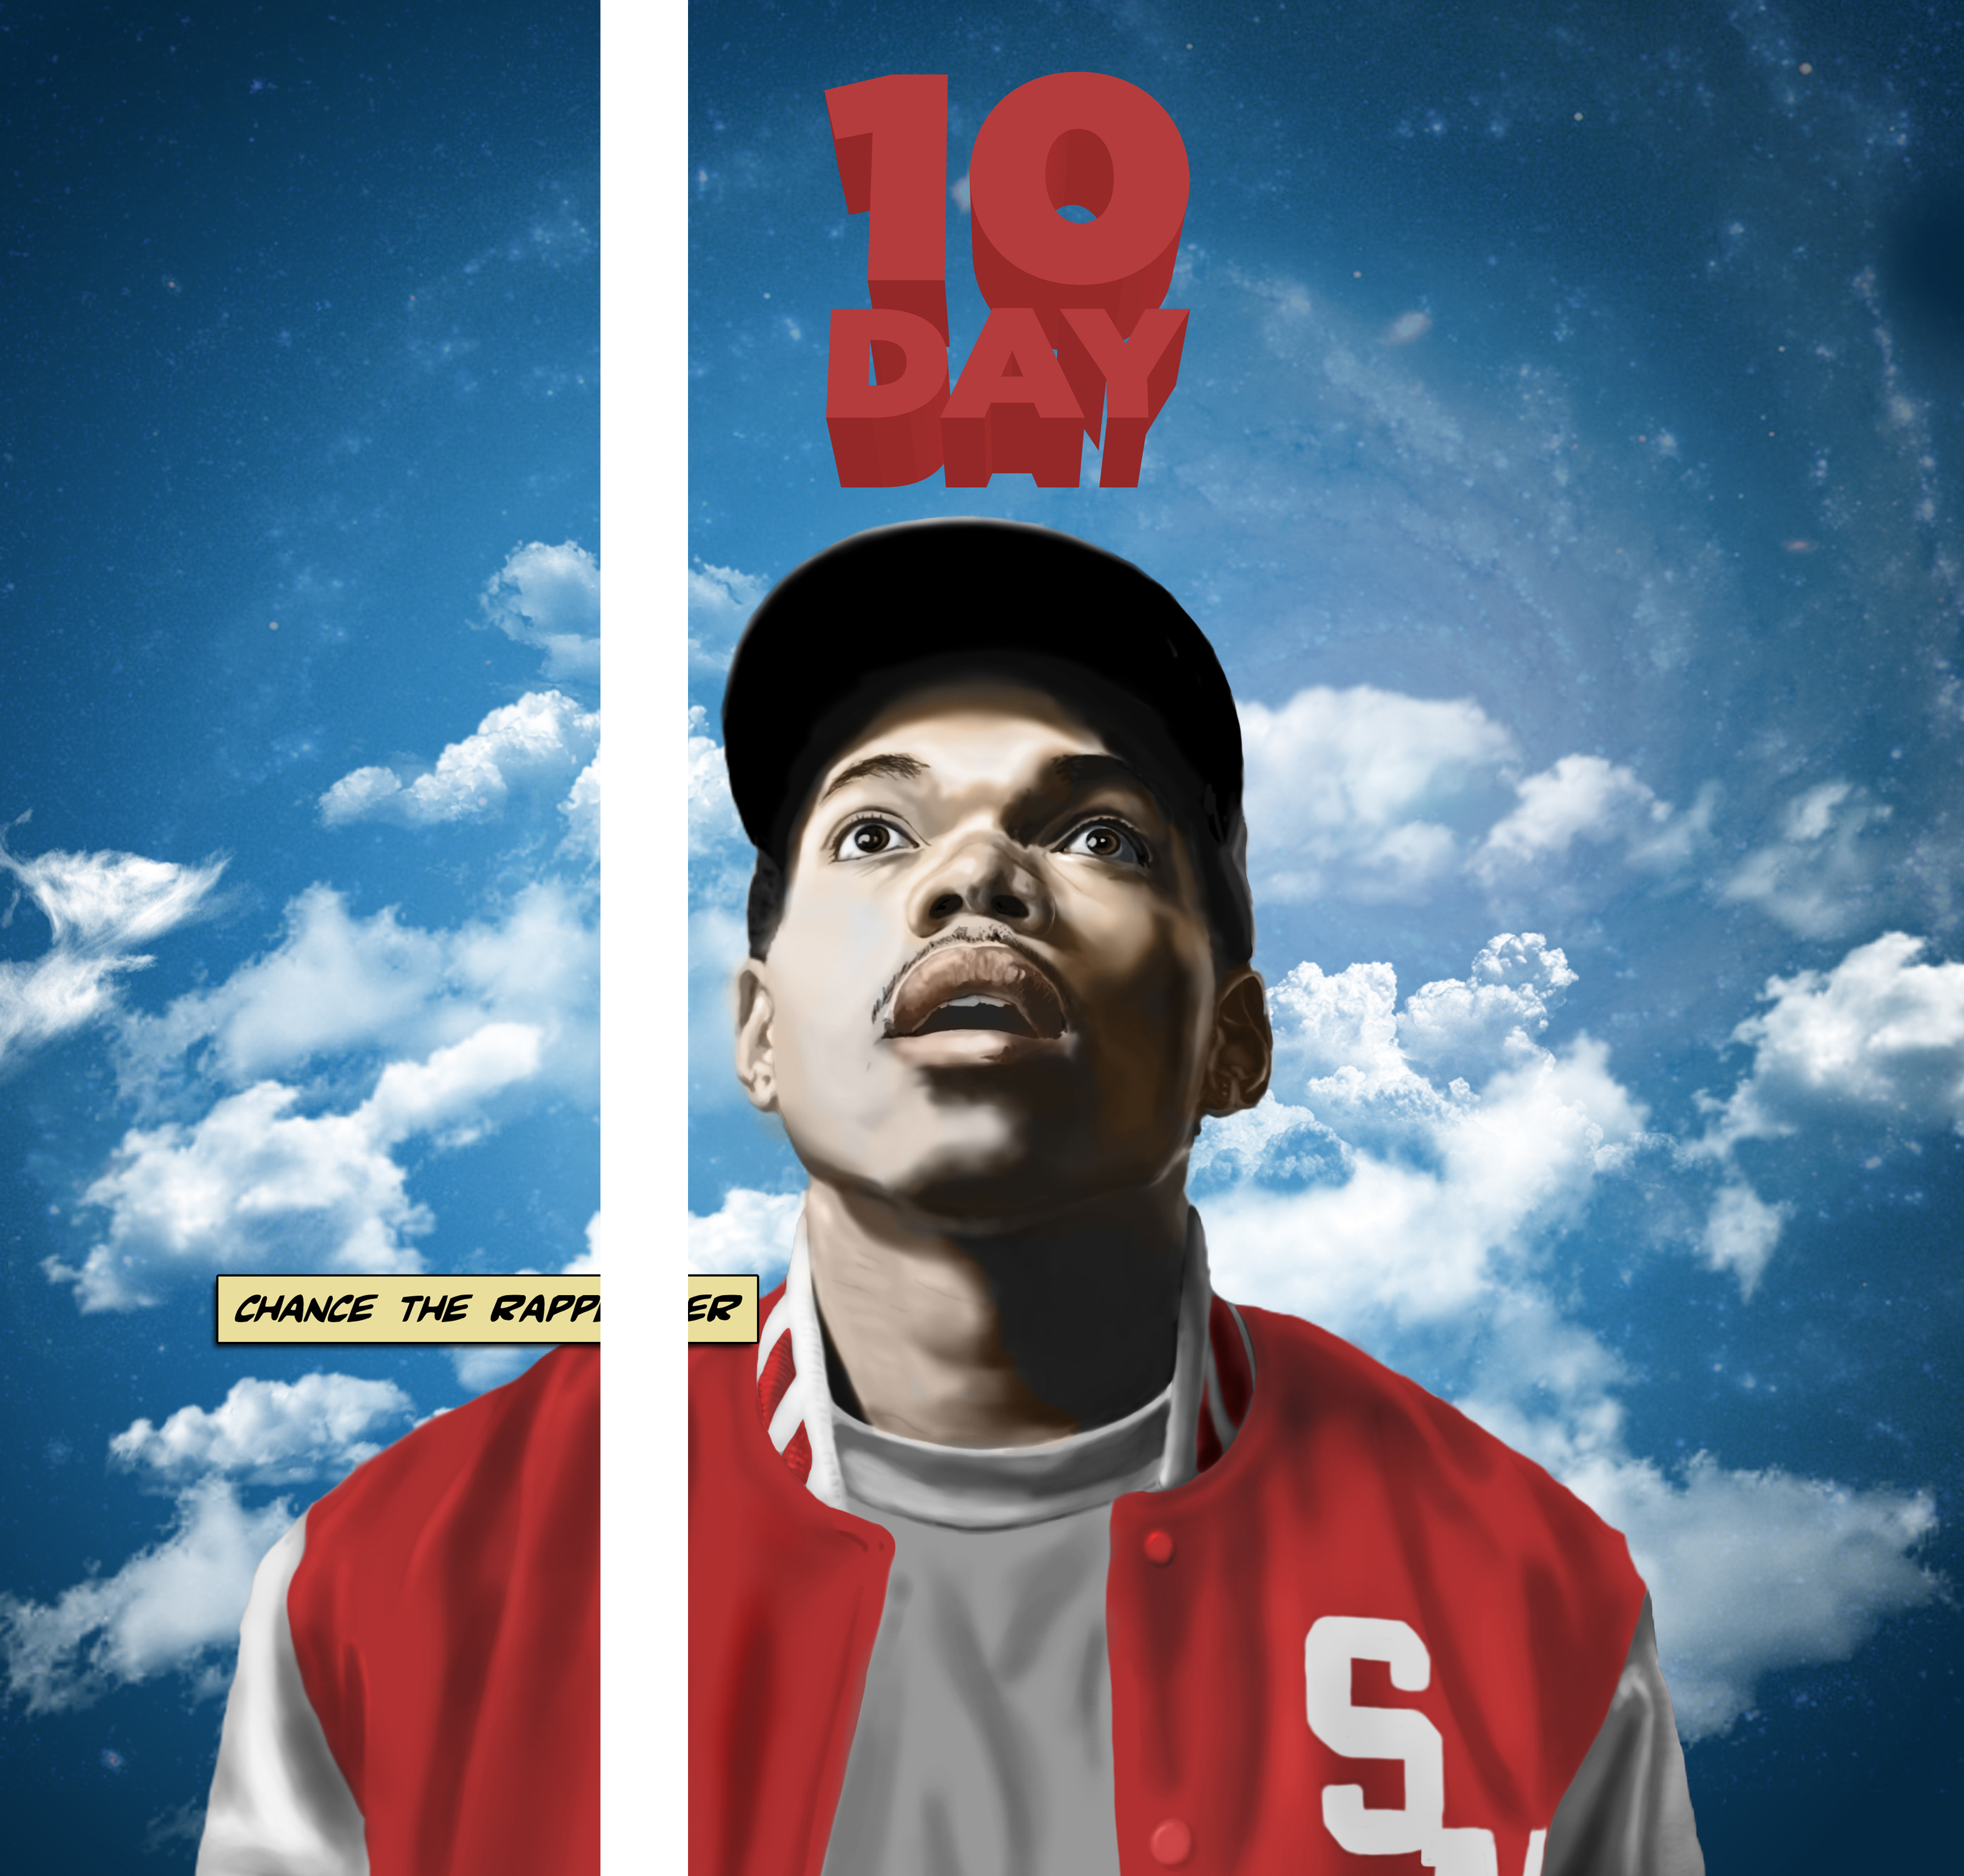 Coloring book download link chance the rapper -  10day